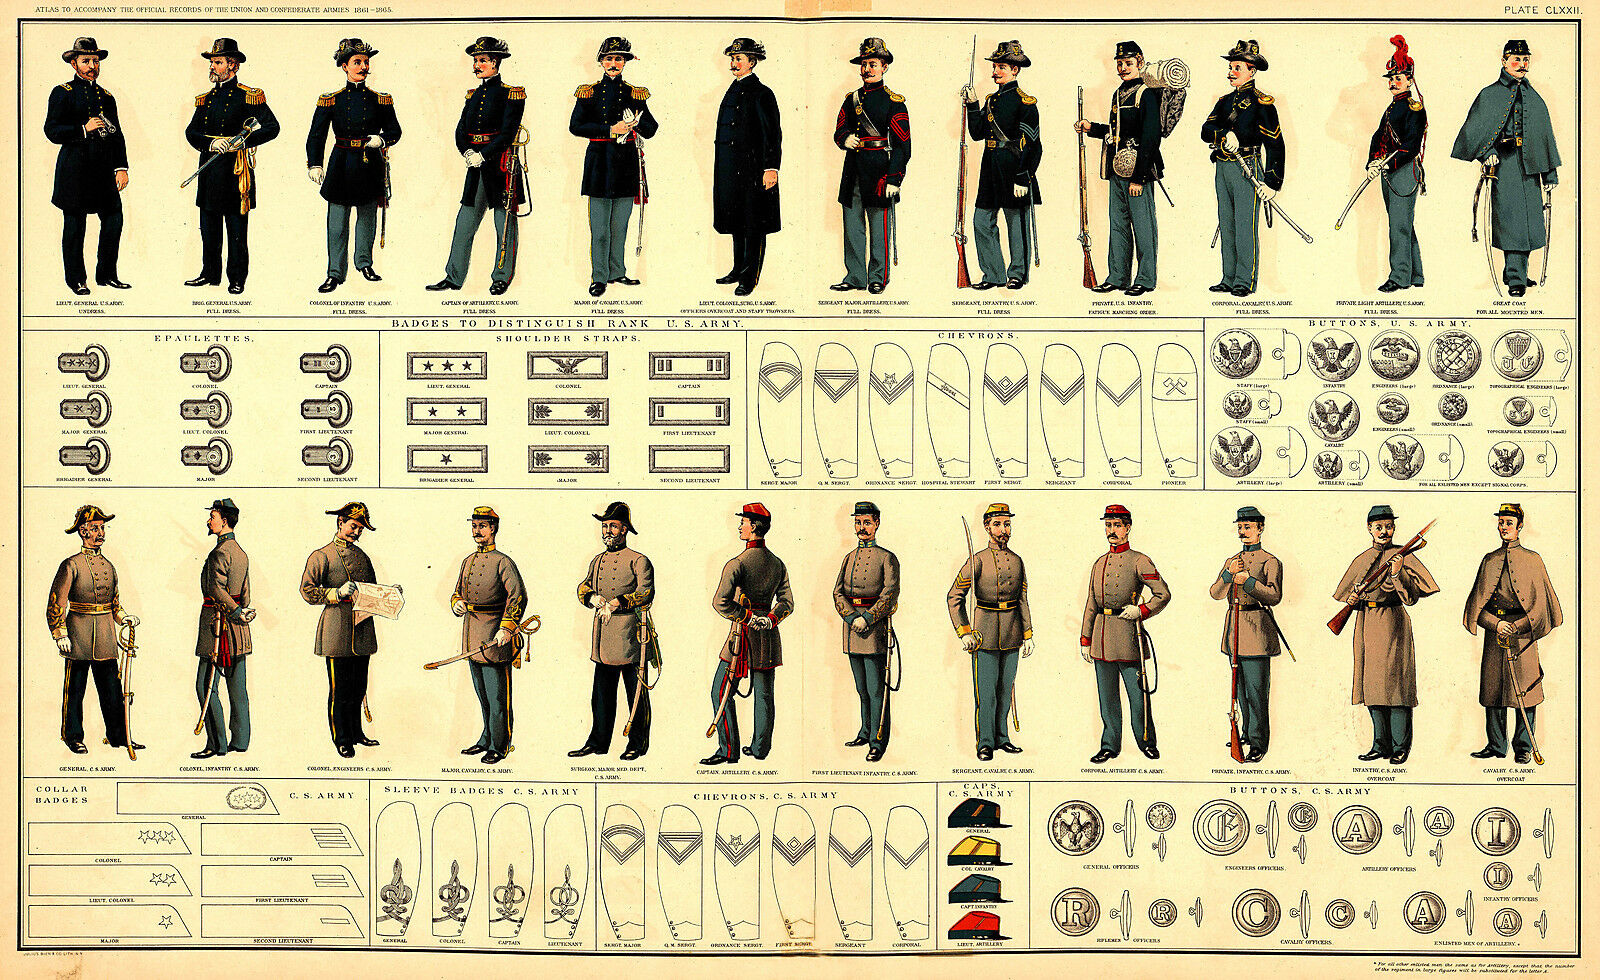 Uniforms Of Union And Confederate Sol Rs During American Civil War Large Print